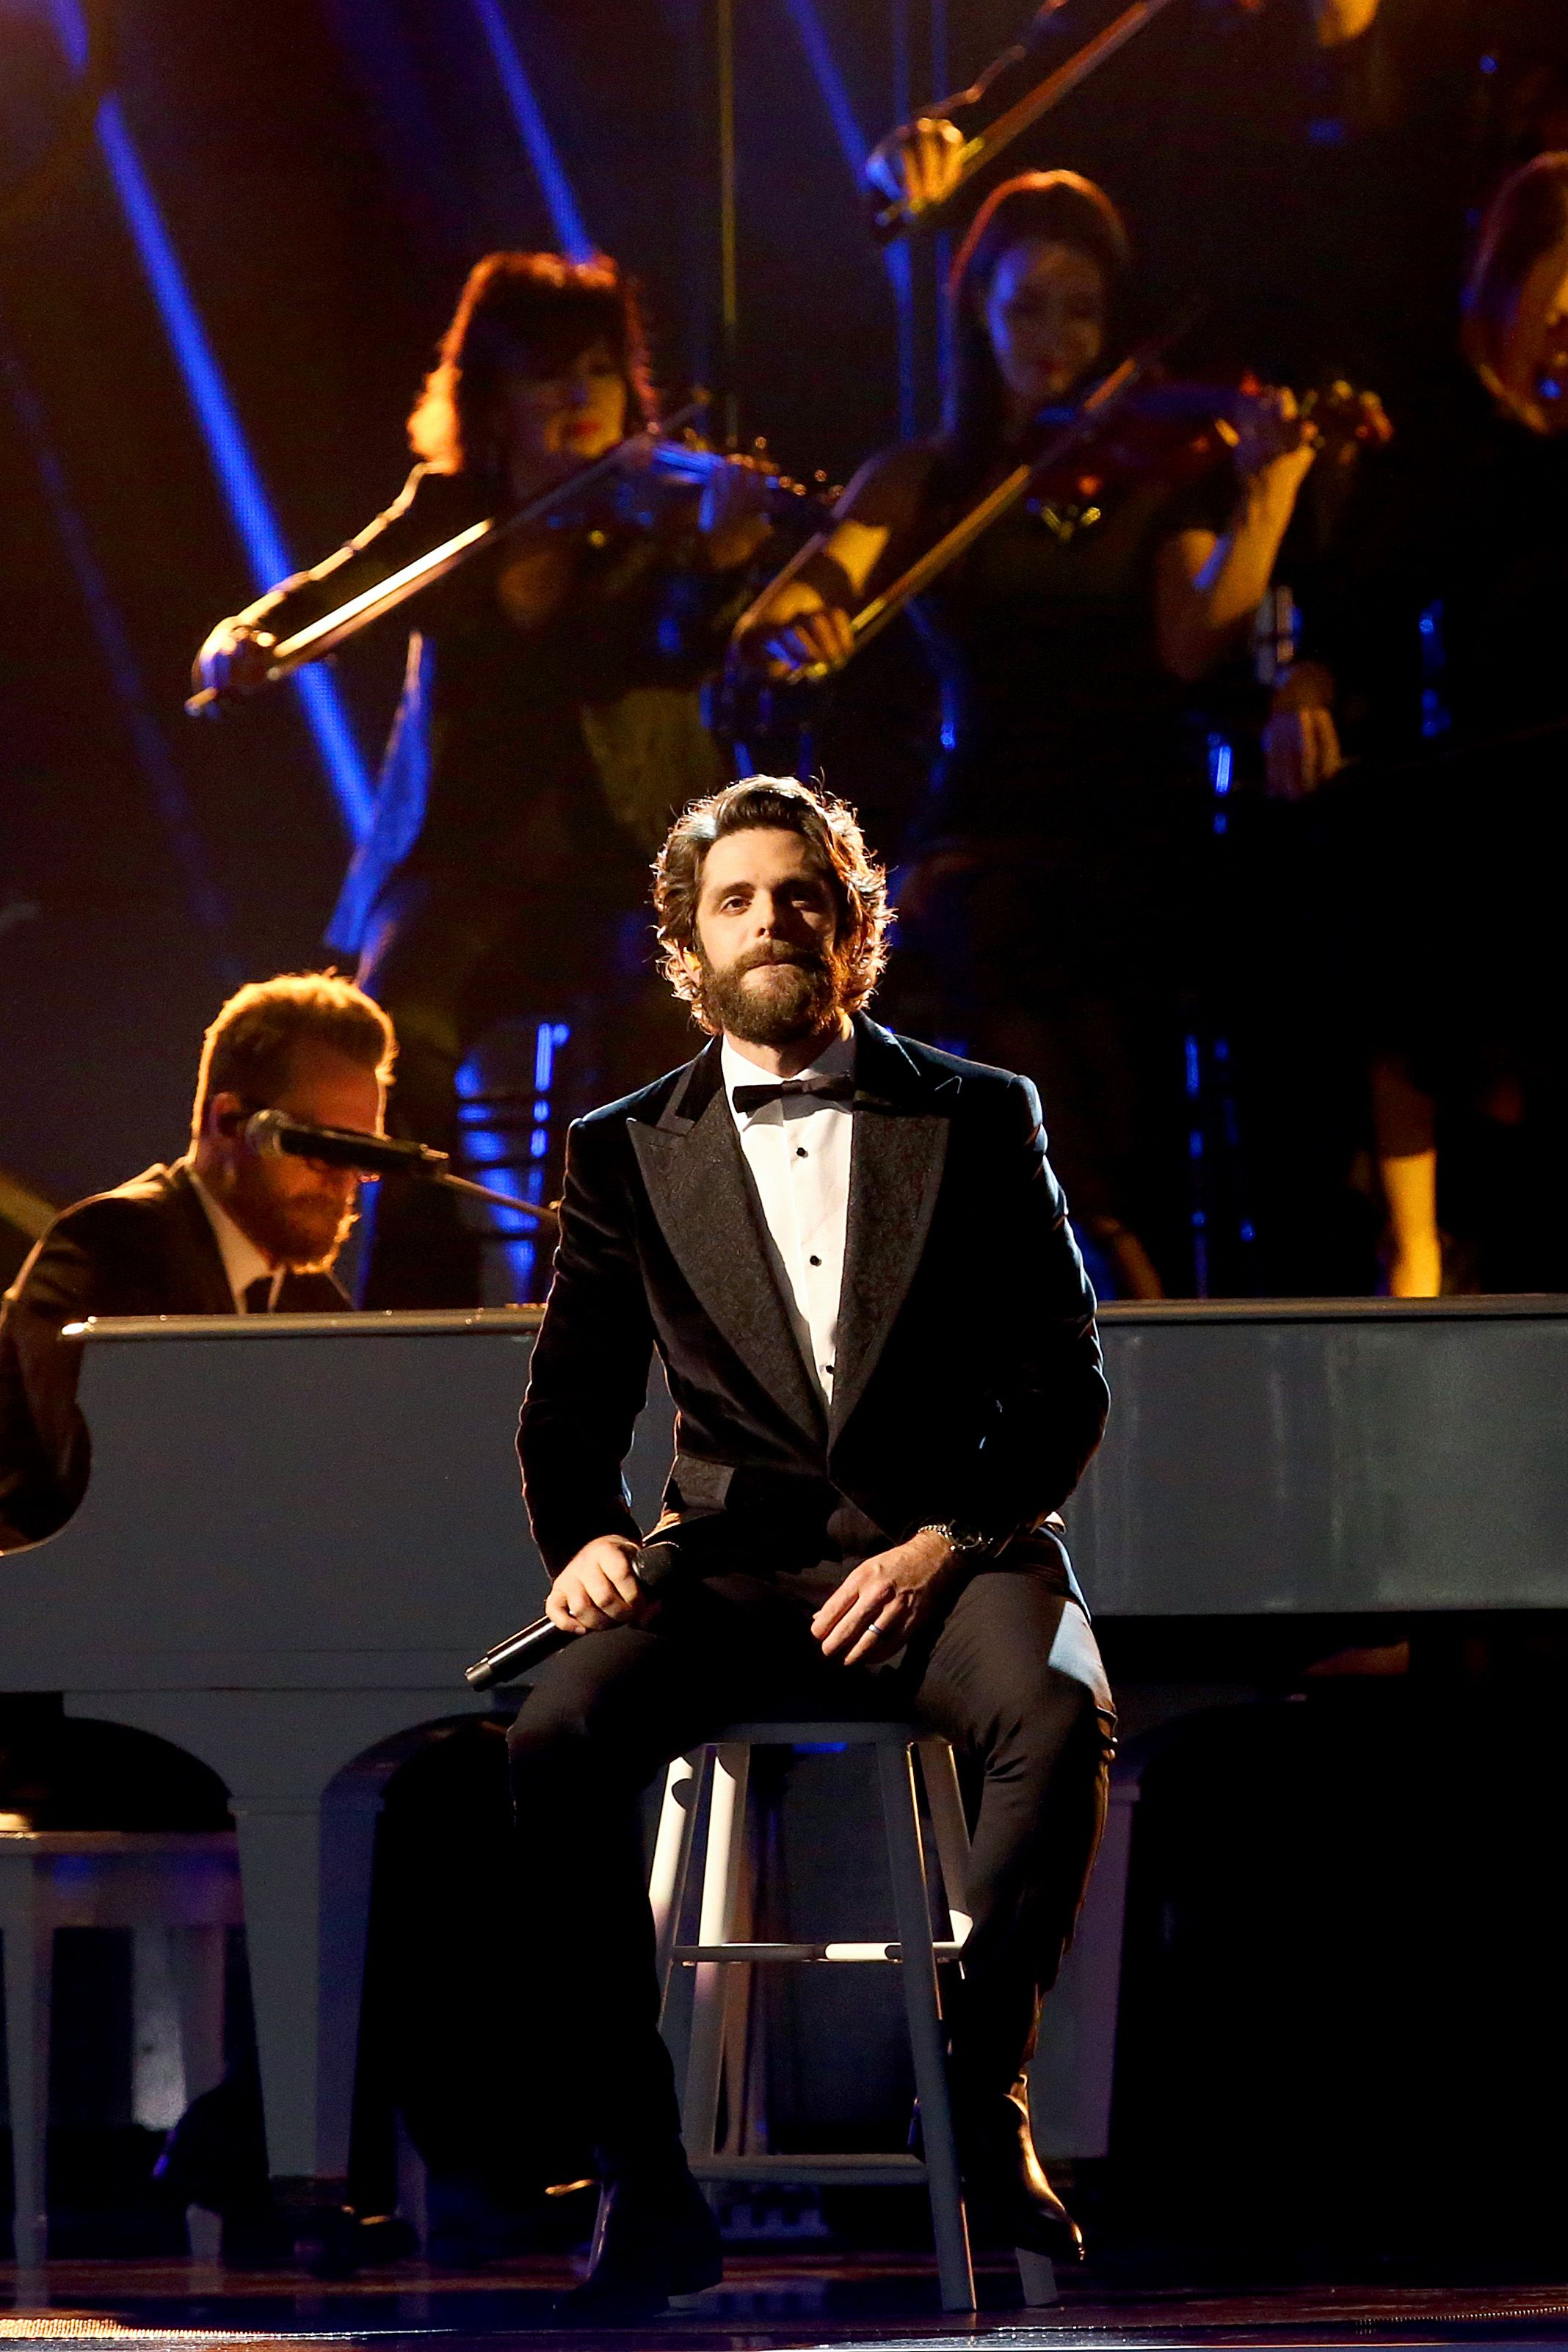 Oops! Thomas Rhett Messed Up the Lyrics to His Own Song at the CMA Awards